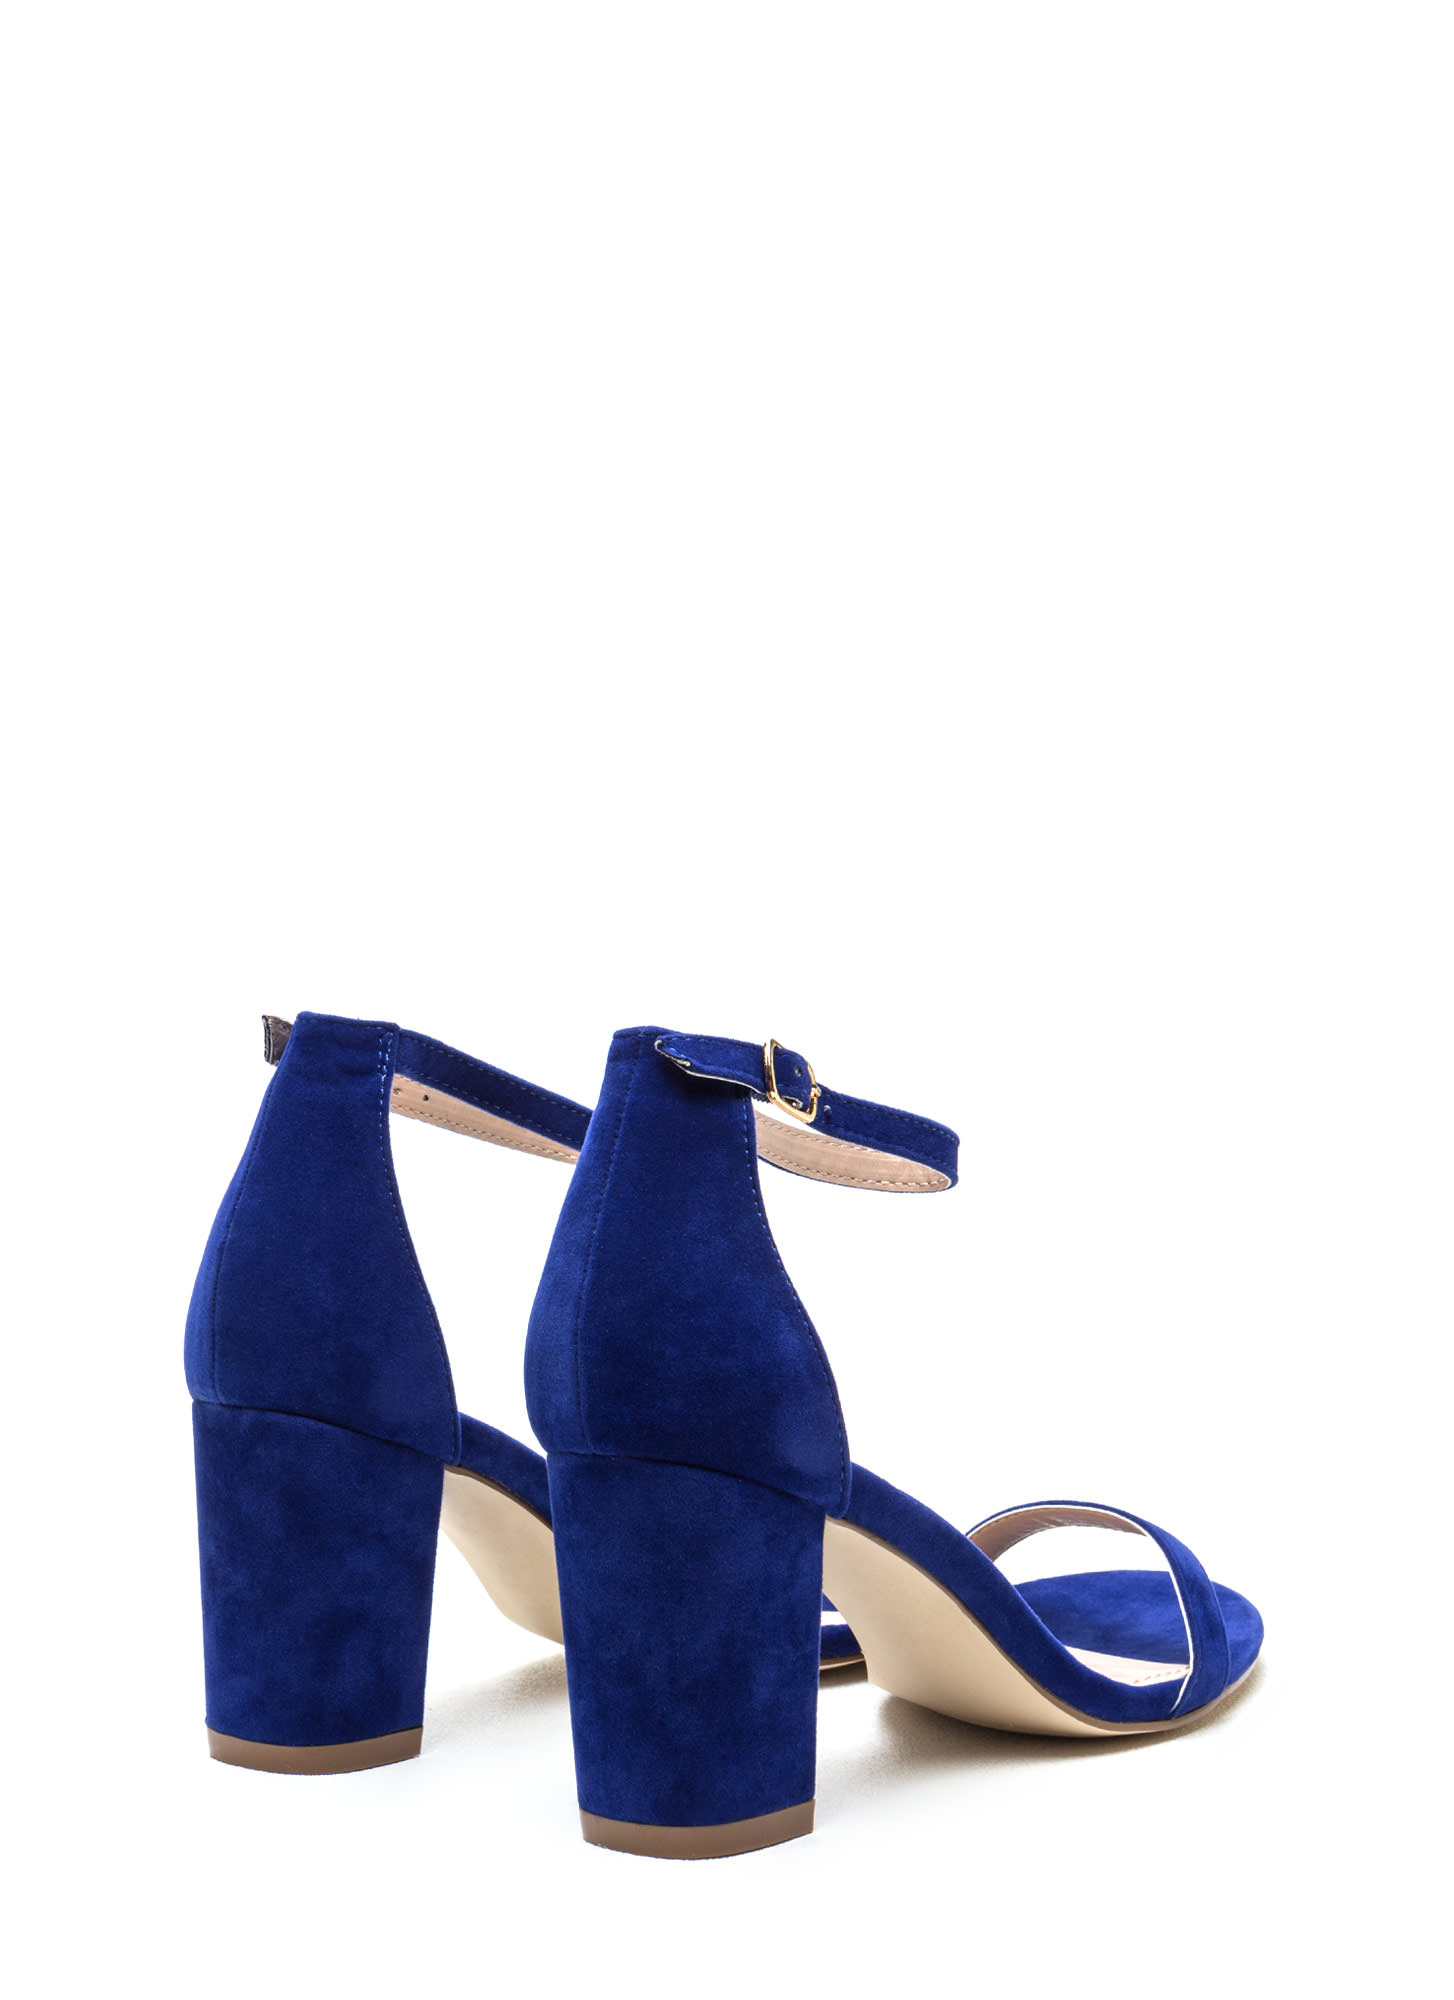 Weekend Outing Faux Suede Chunky Heels BLUE